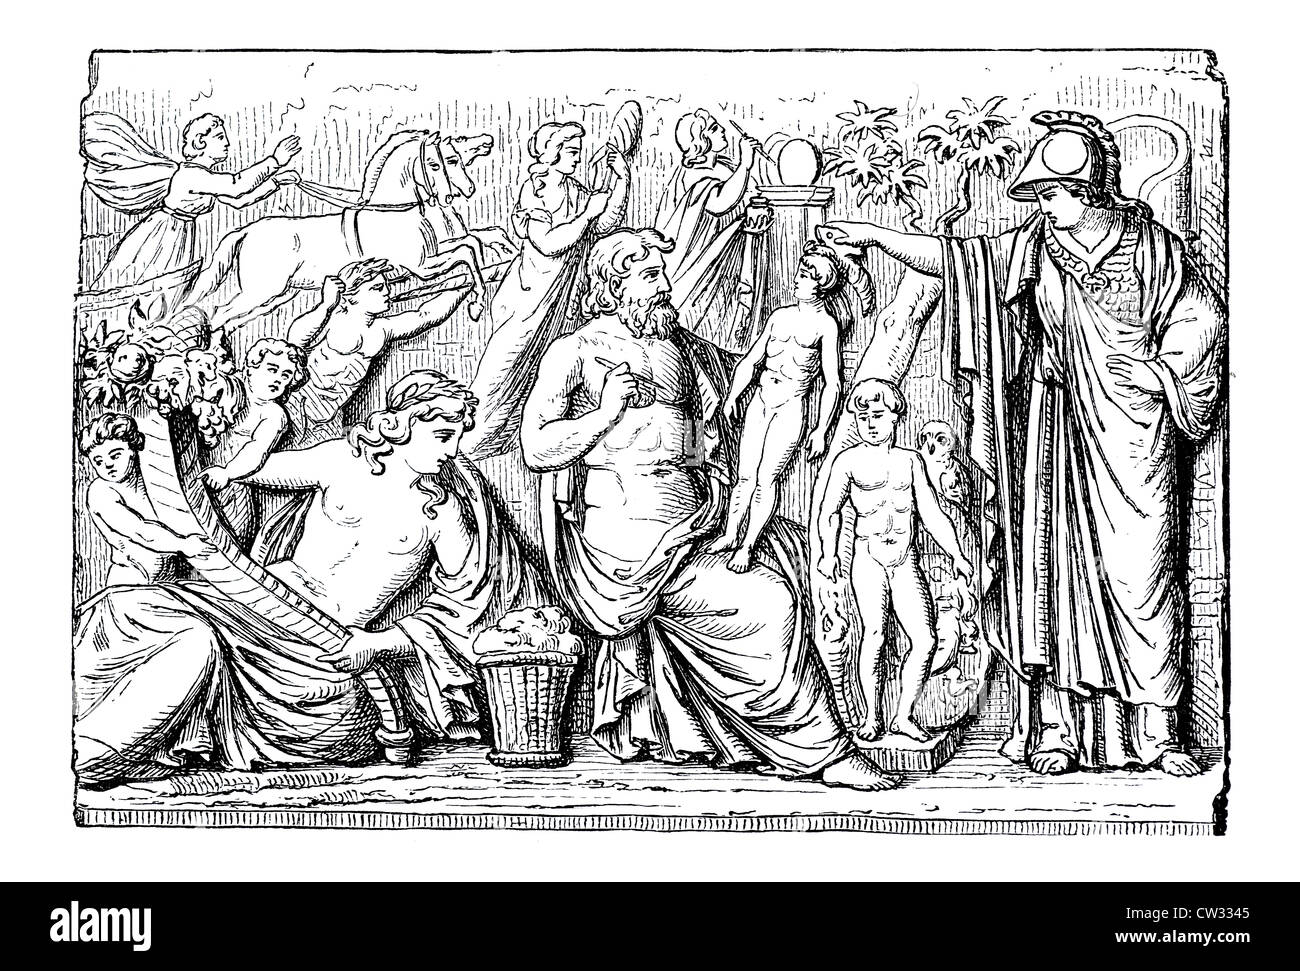 Prometheus wakens the humans - Stock Image